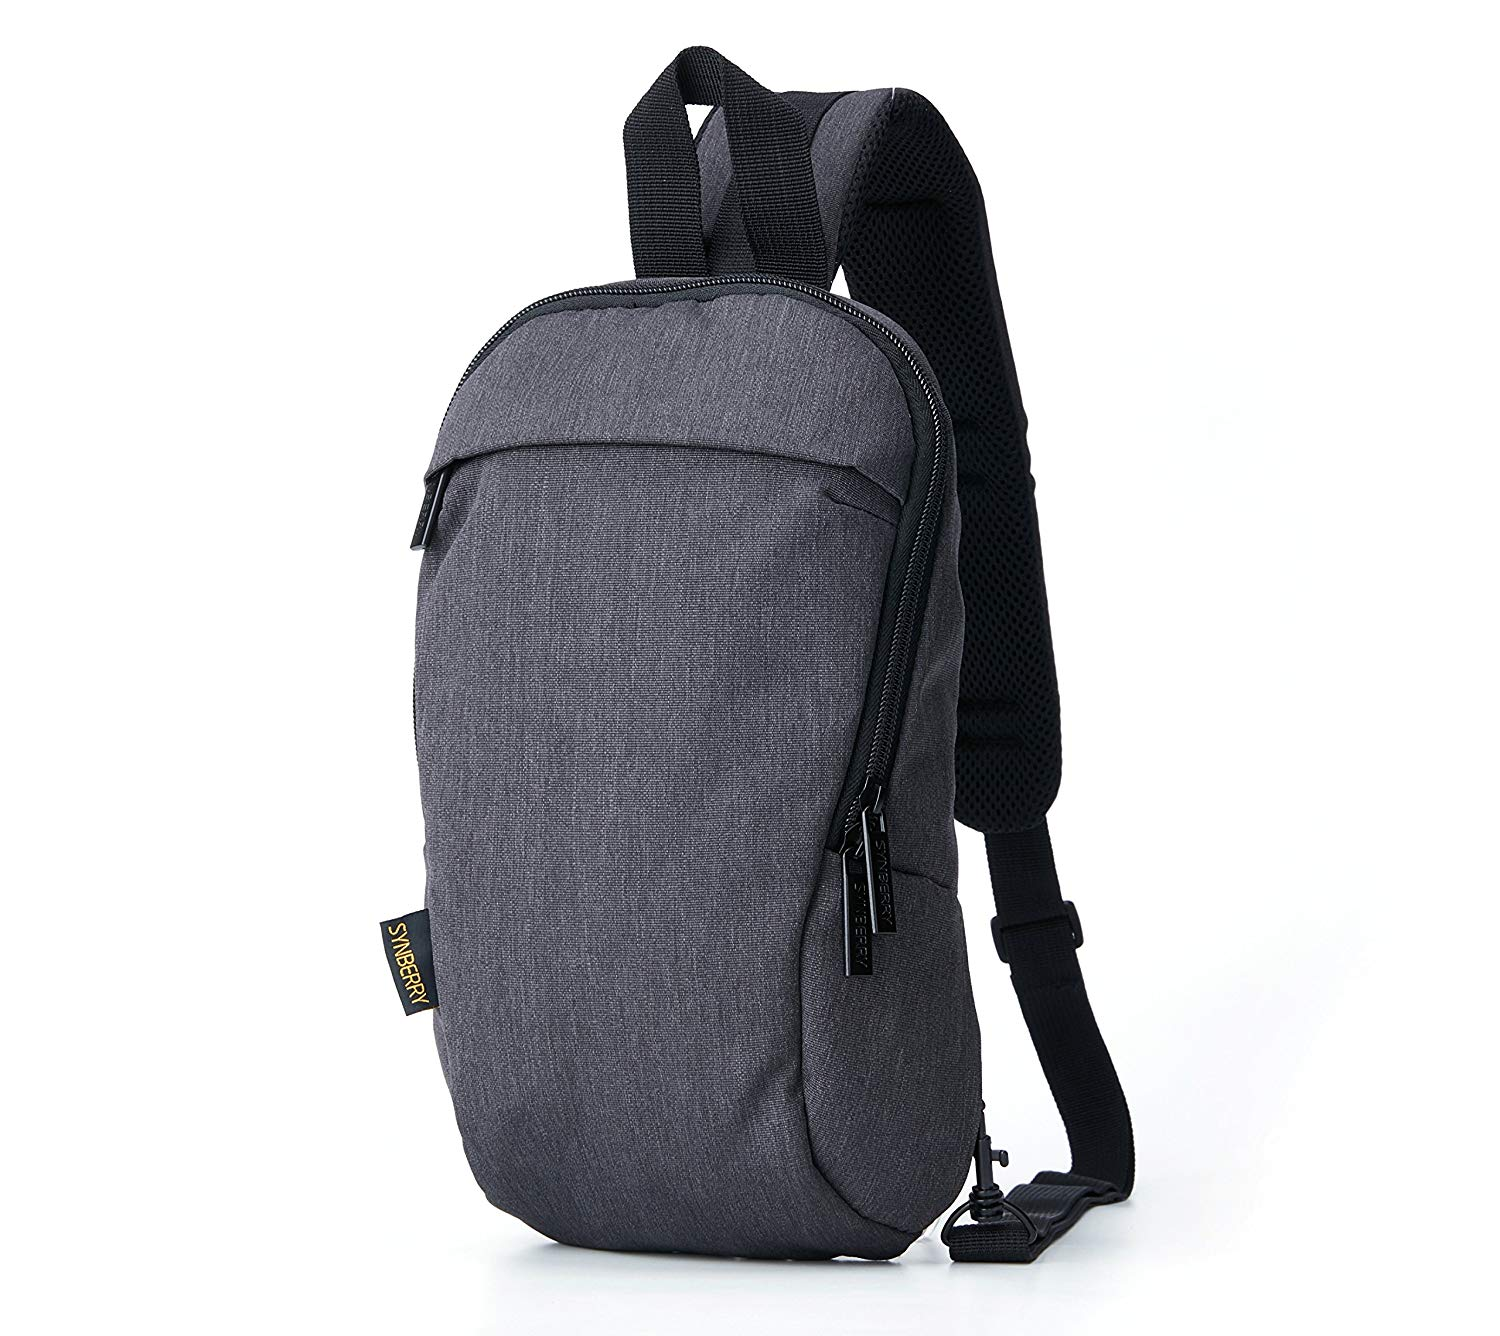 d7600558d441 Get Quotations · Synberry Sling Bag Cross Body Messenger Bag Shoulder  Backpack Travel Rucksack